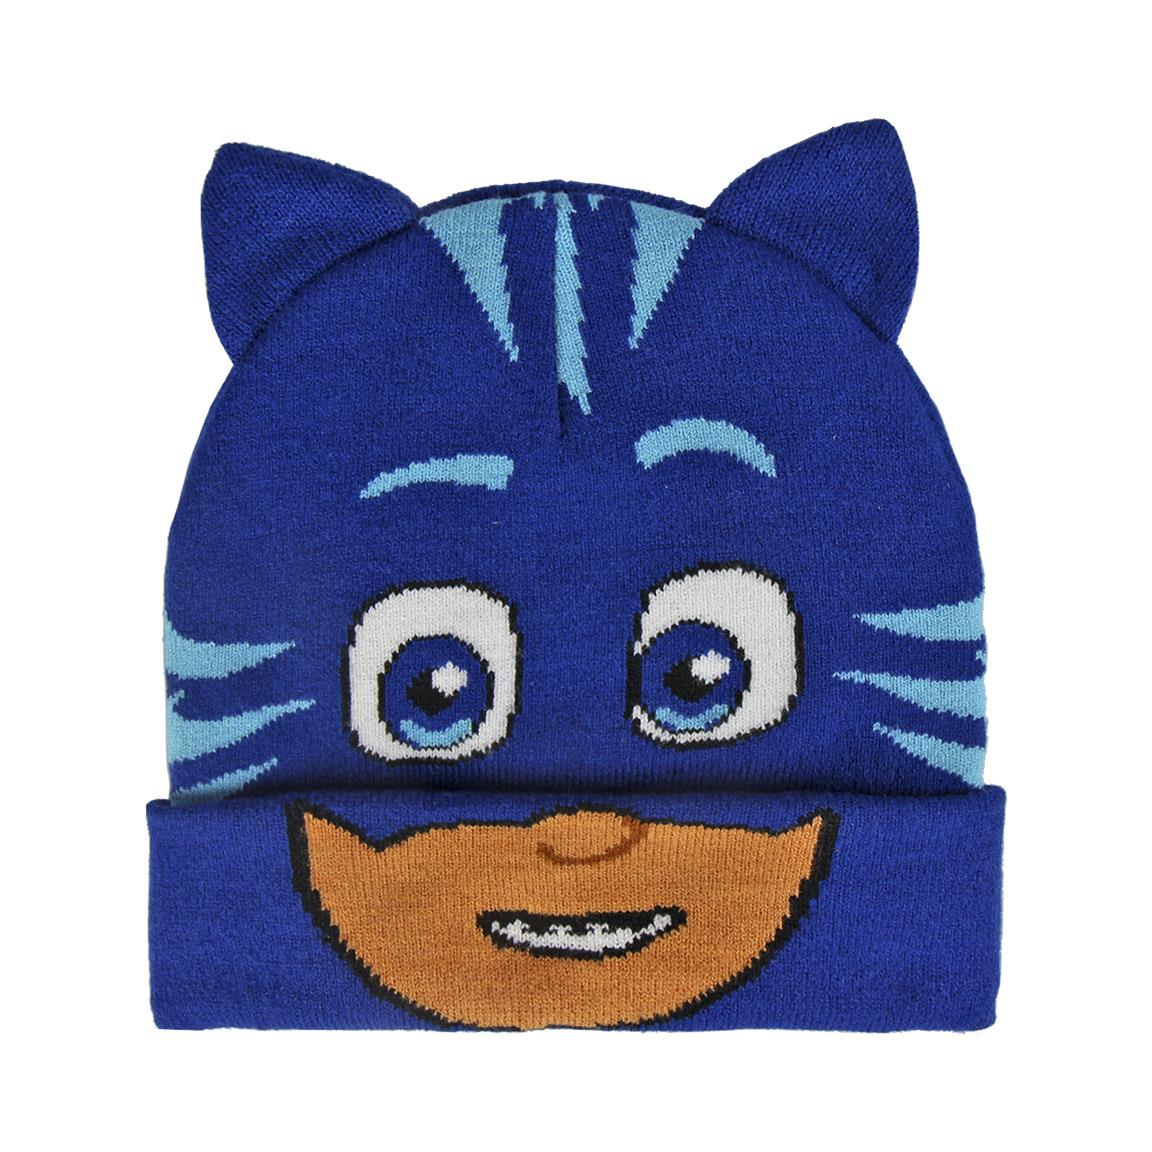 Manufacturer and wholesaler of HAT WITH APPLICATIONS PJ MASKS GATUNO 58337a63a07